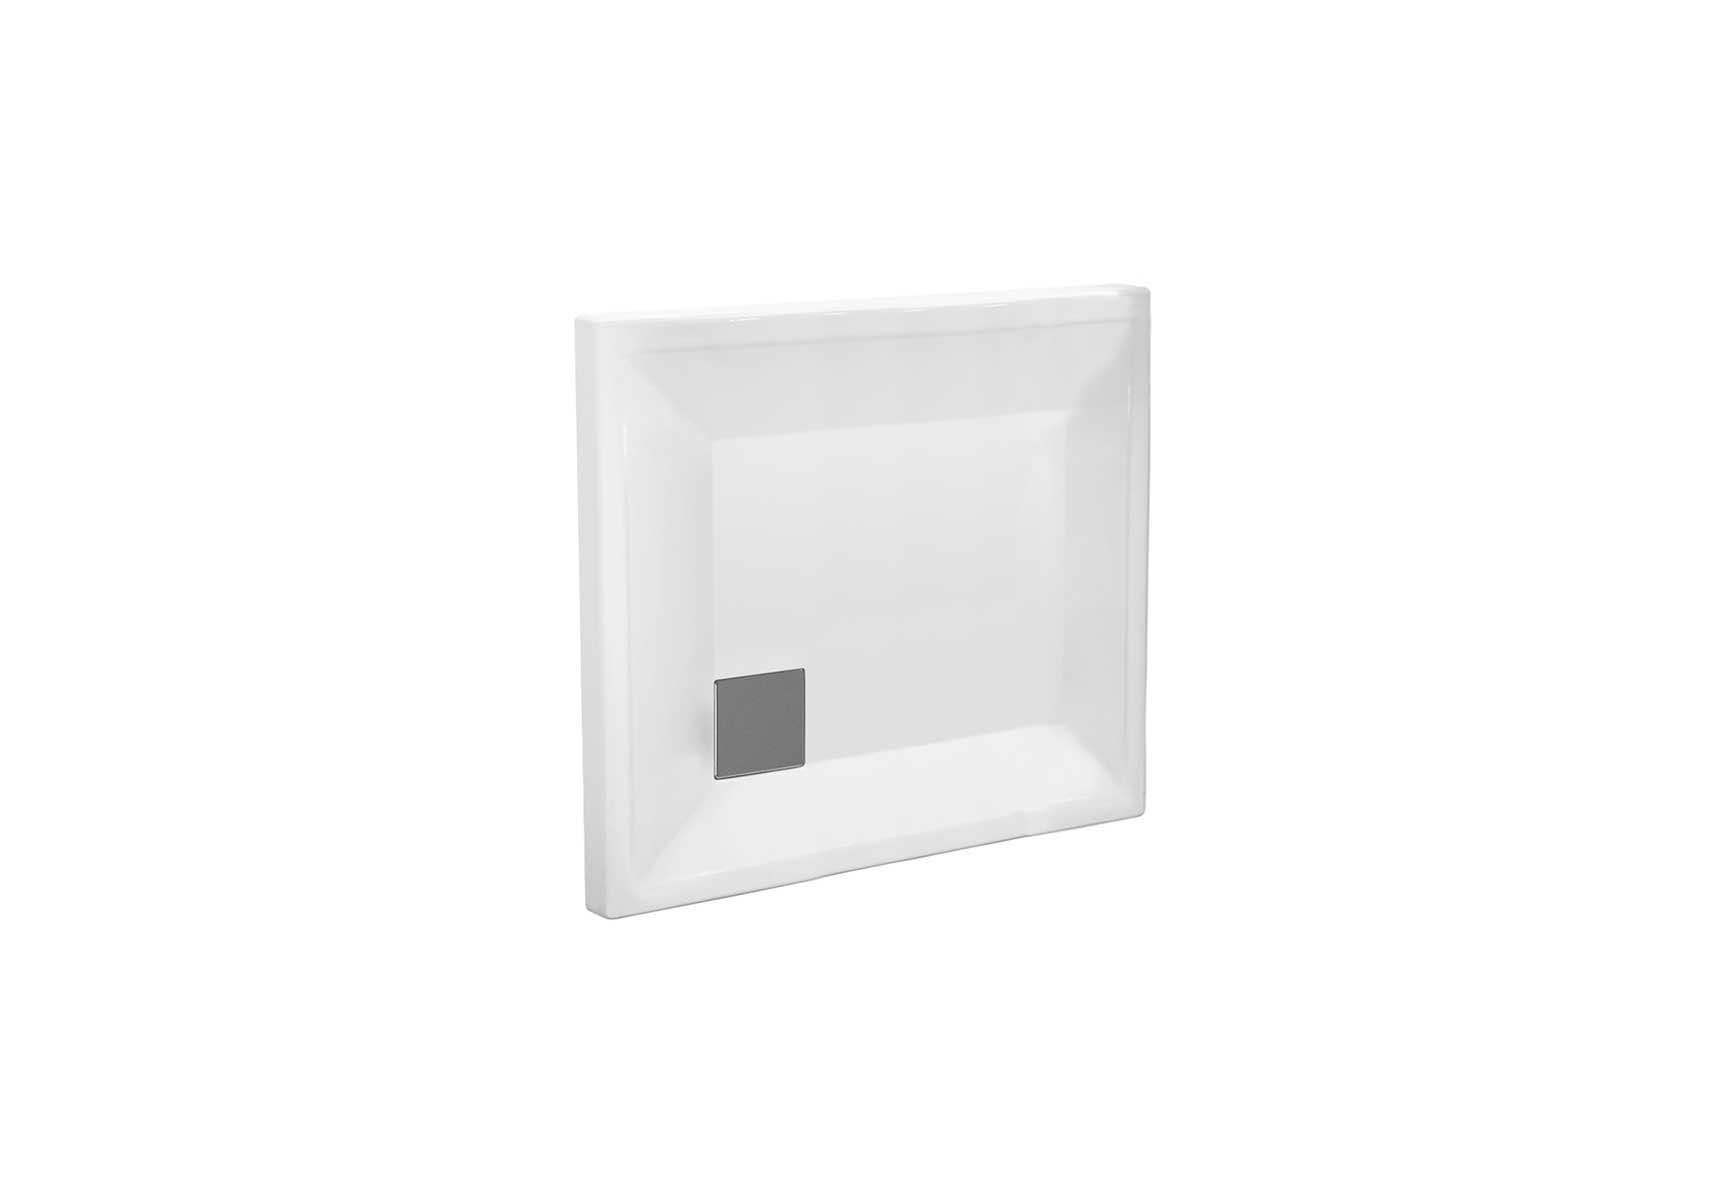 T90 90x90 Square Monoflat Shower Tray